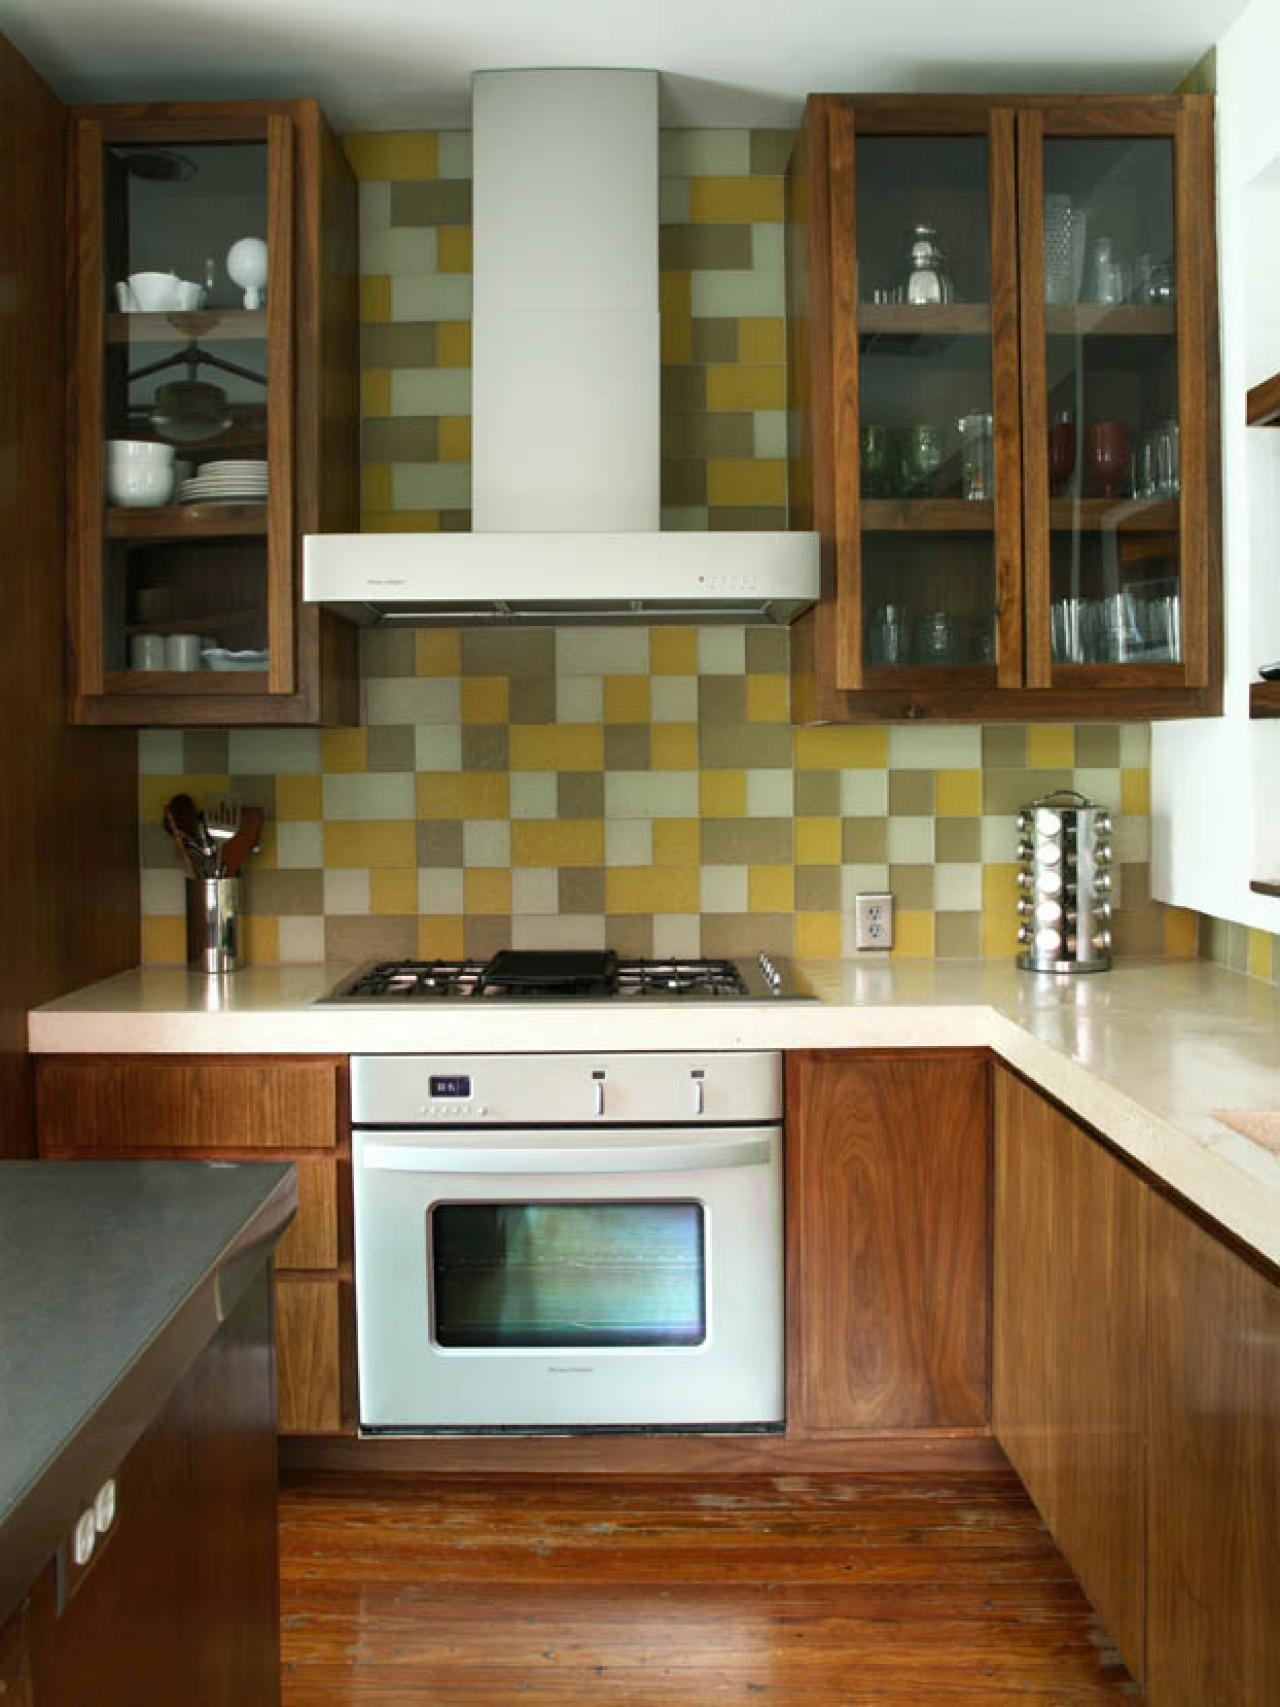 glass tile backsplash ideas: pictures & tips from hgtv | hgtv